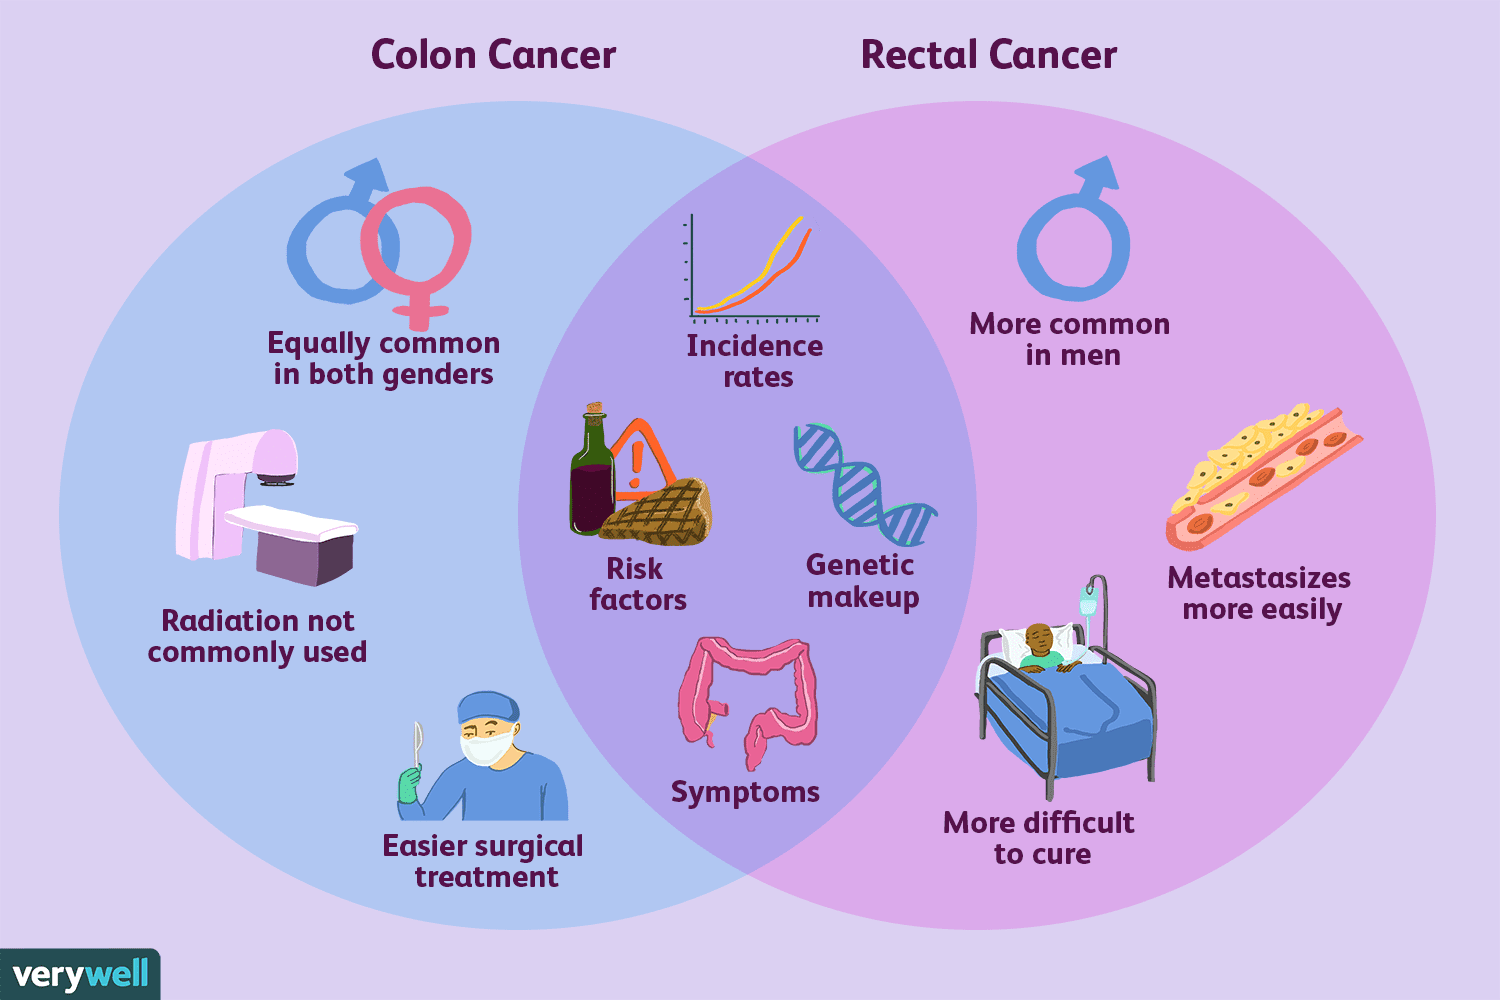 Colorectal cancer histopathology - MISDIAGNOSIS OF COLORECTAL CANCER IN ELDERLY PATIENTS